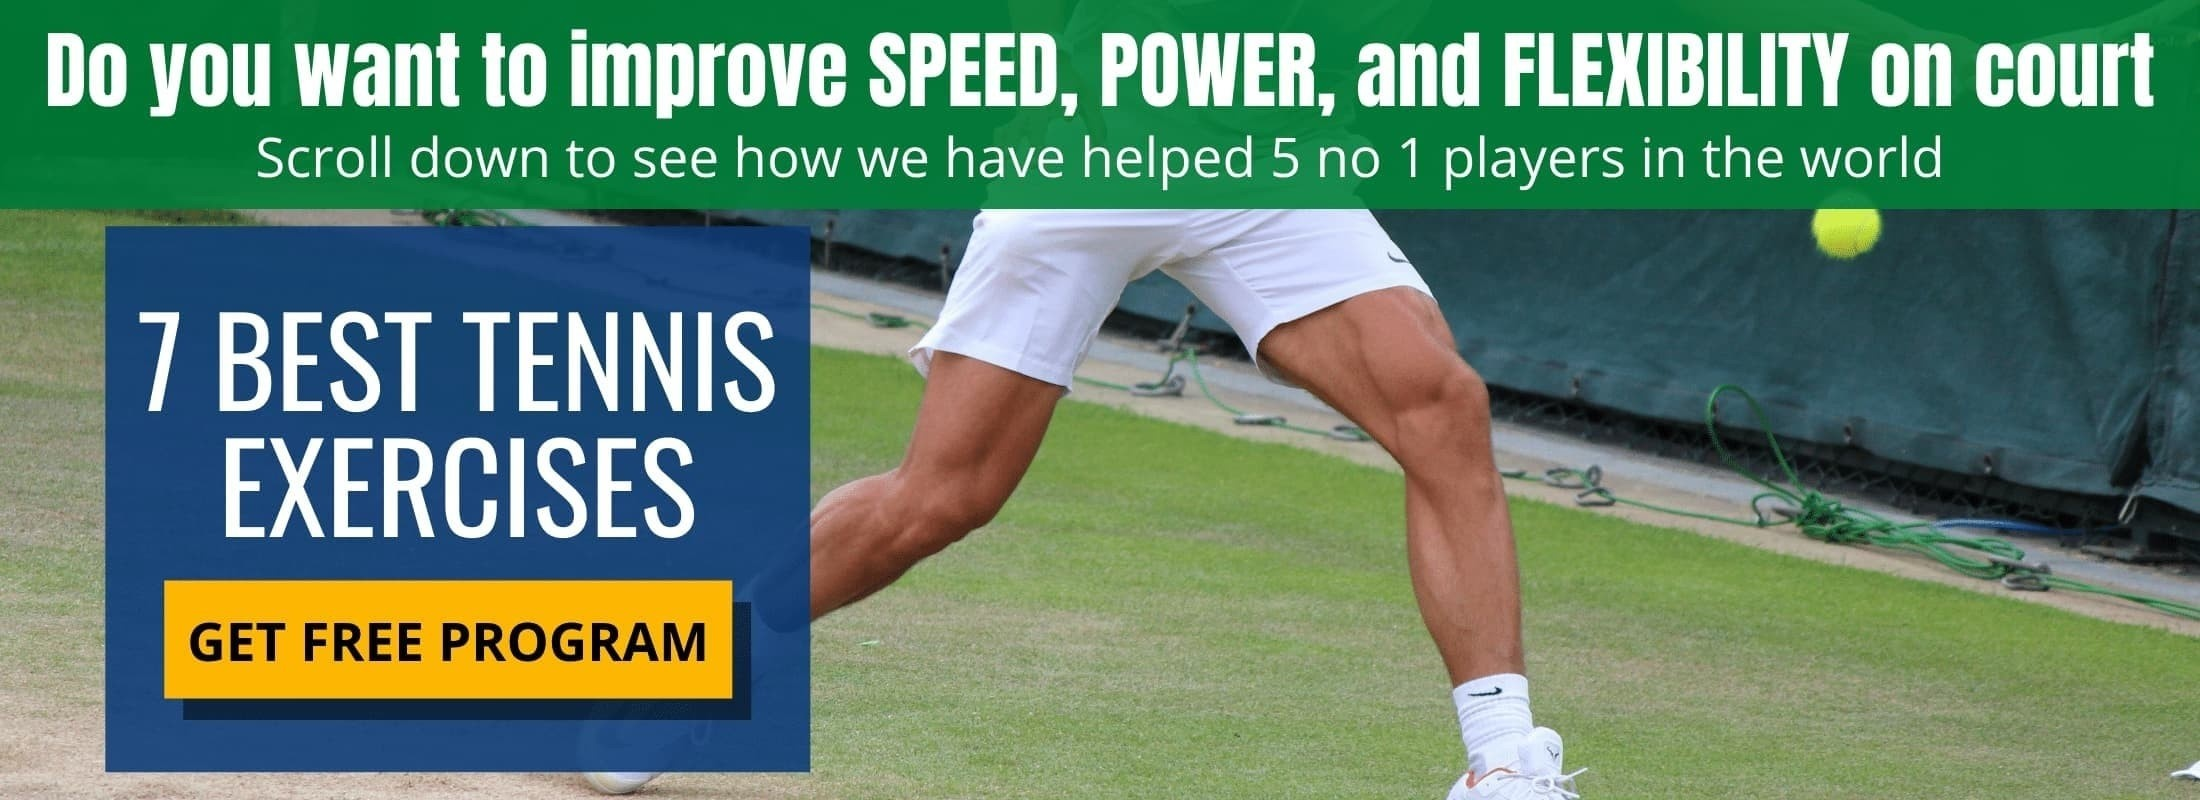 tennis-fitness-homepage-banner